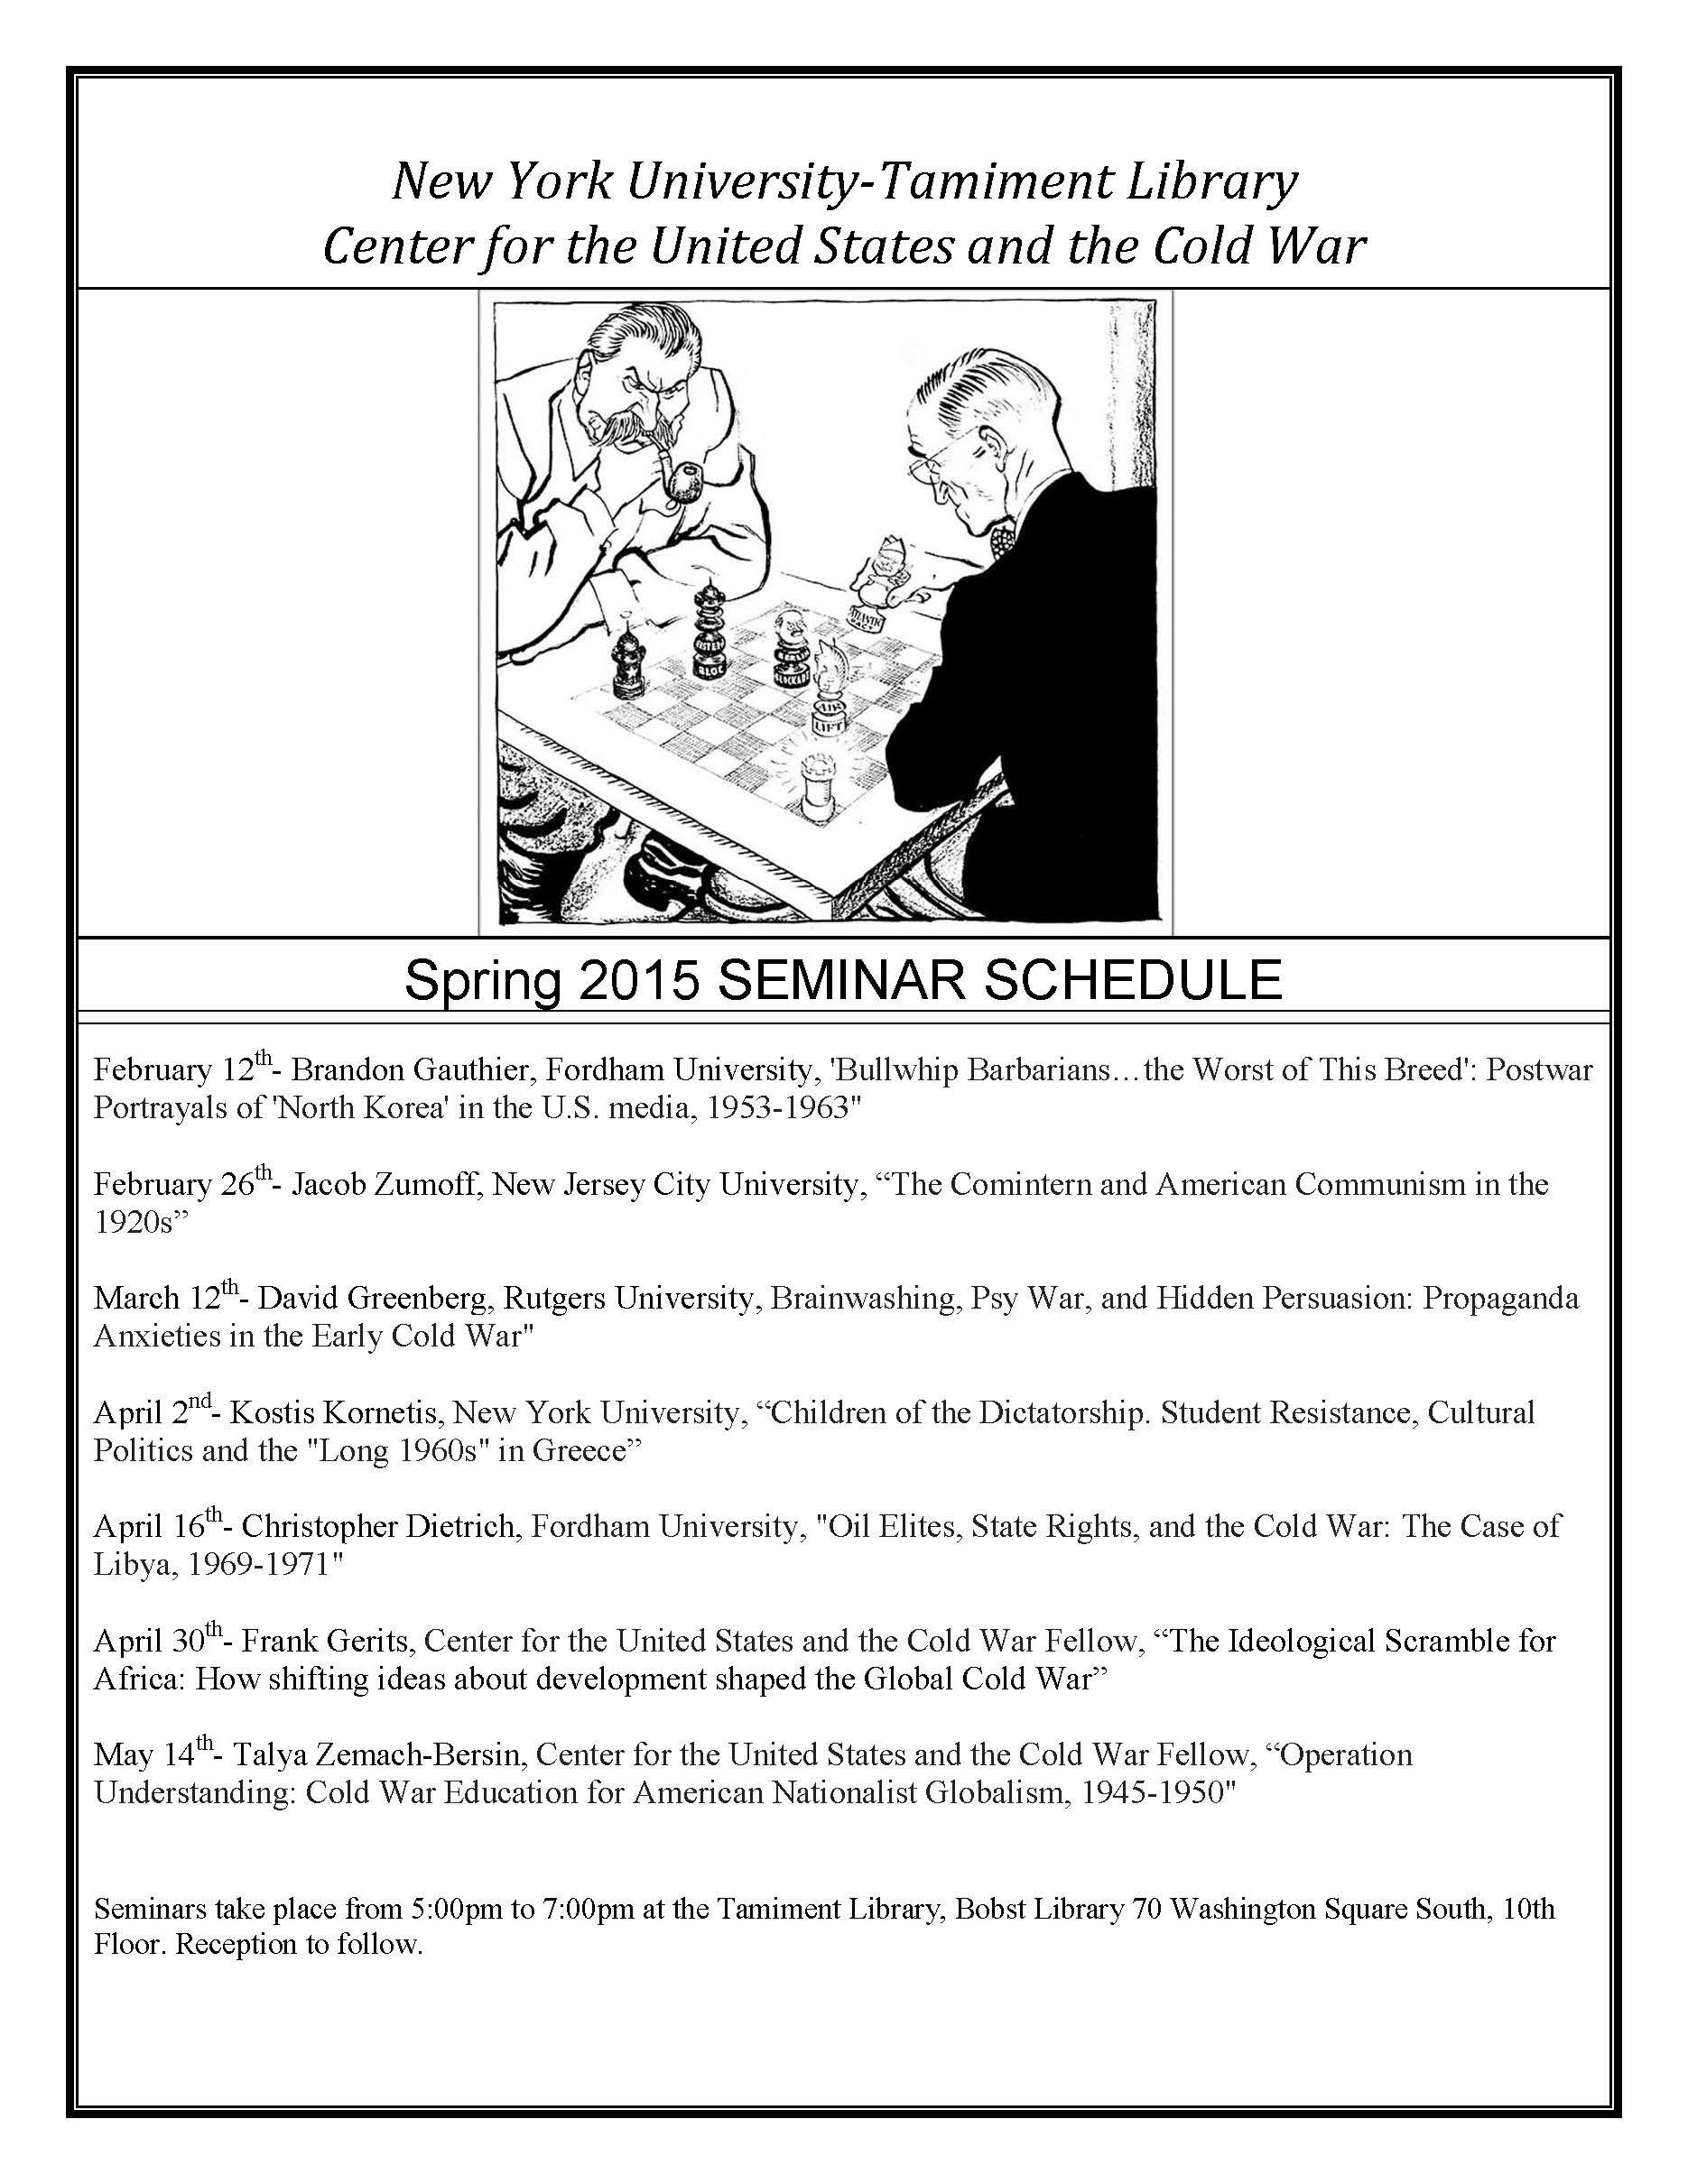 NYU-Tamiment Library Center: Spring 2015 SEMINAR SCHEDULE –